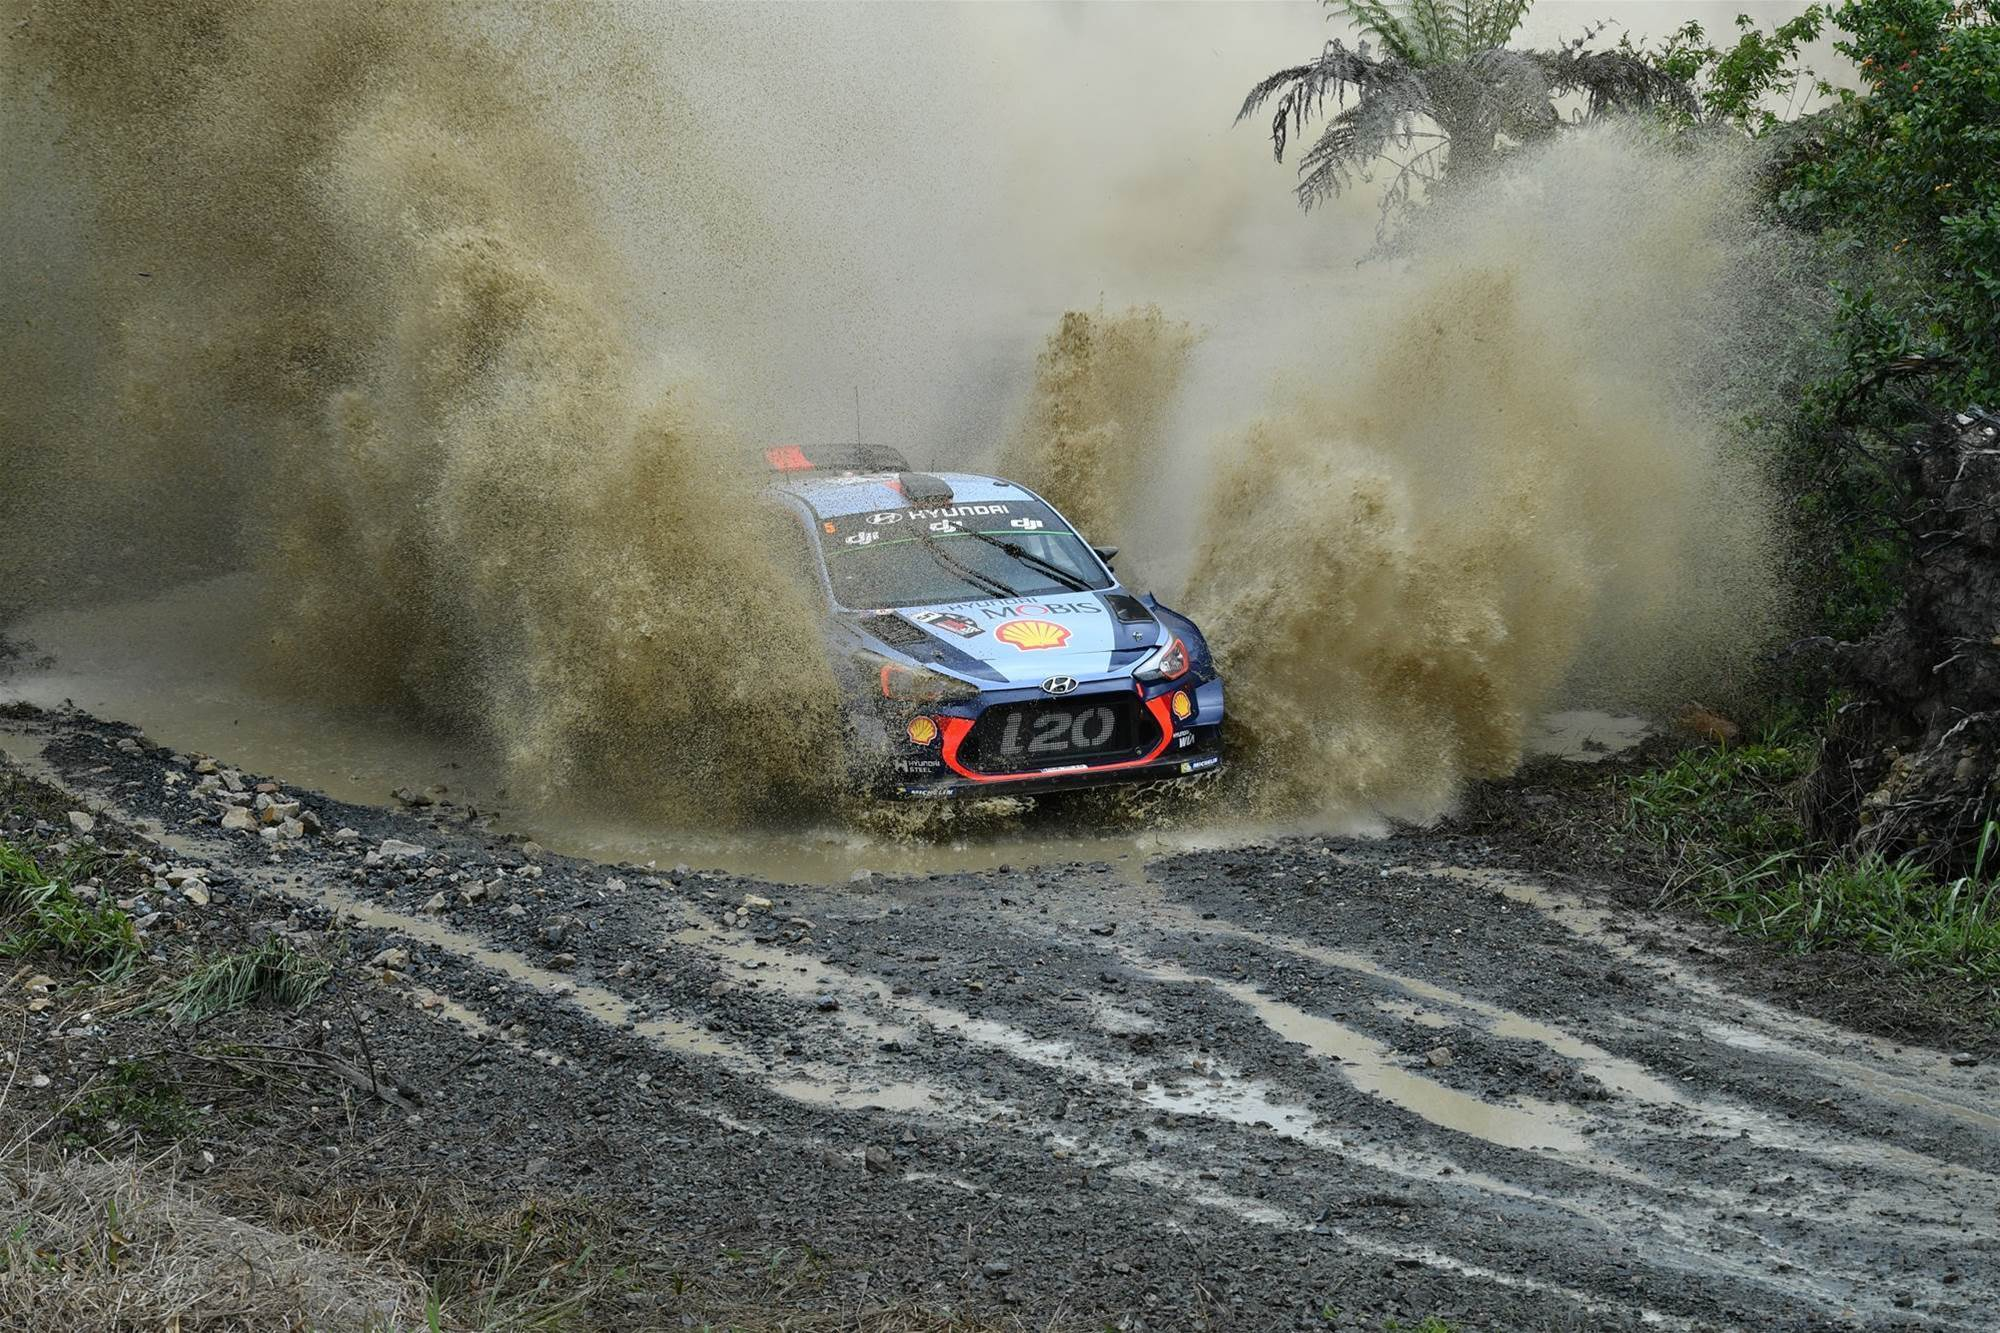 Pic gallery: Coffs Harbour WRC